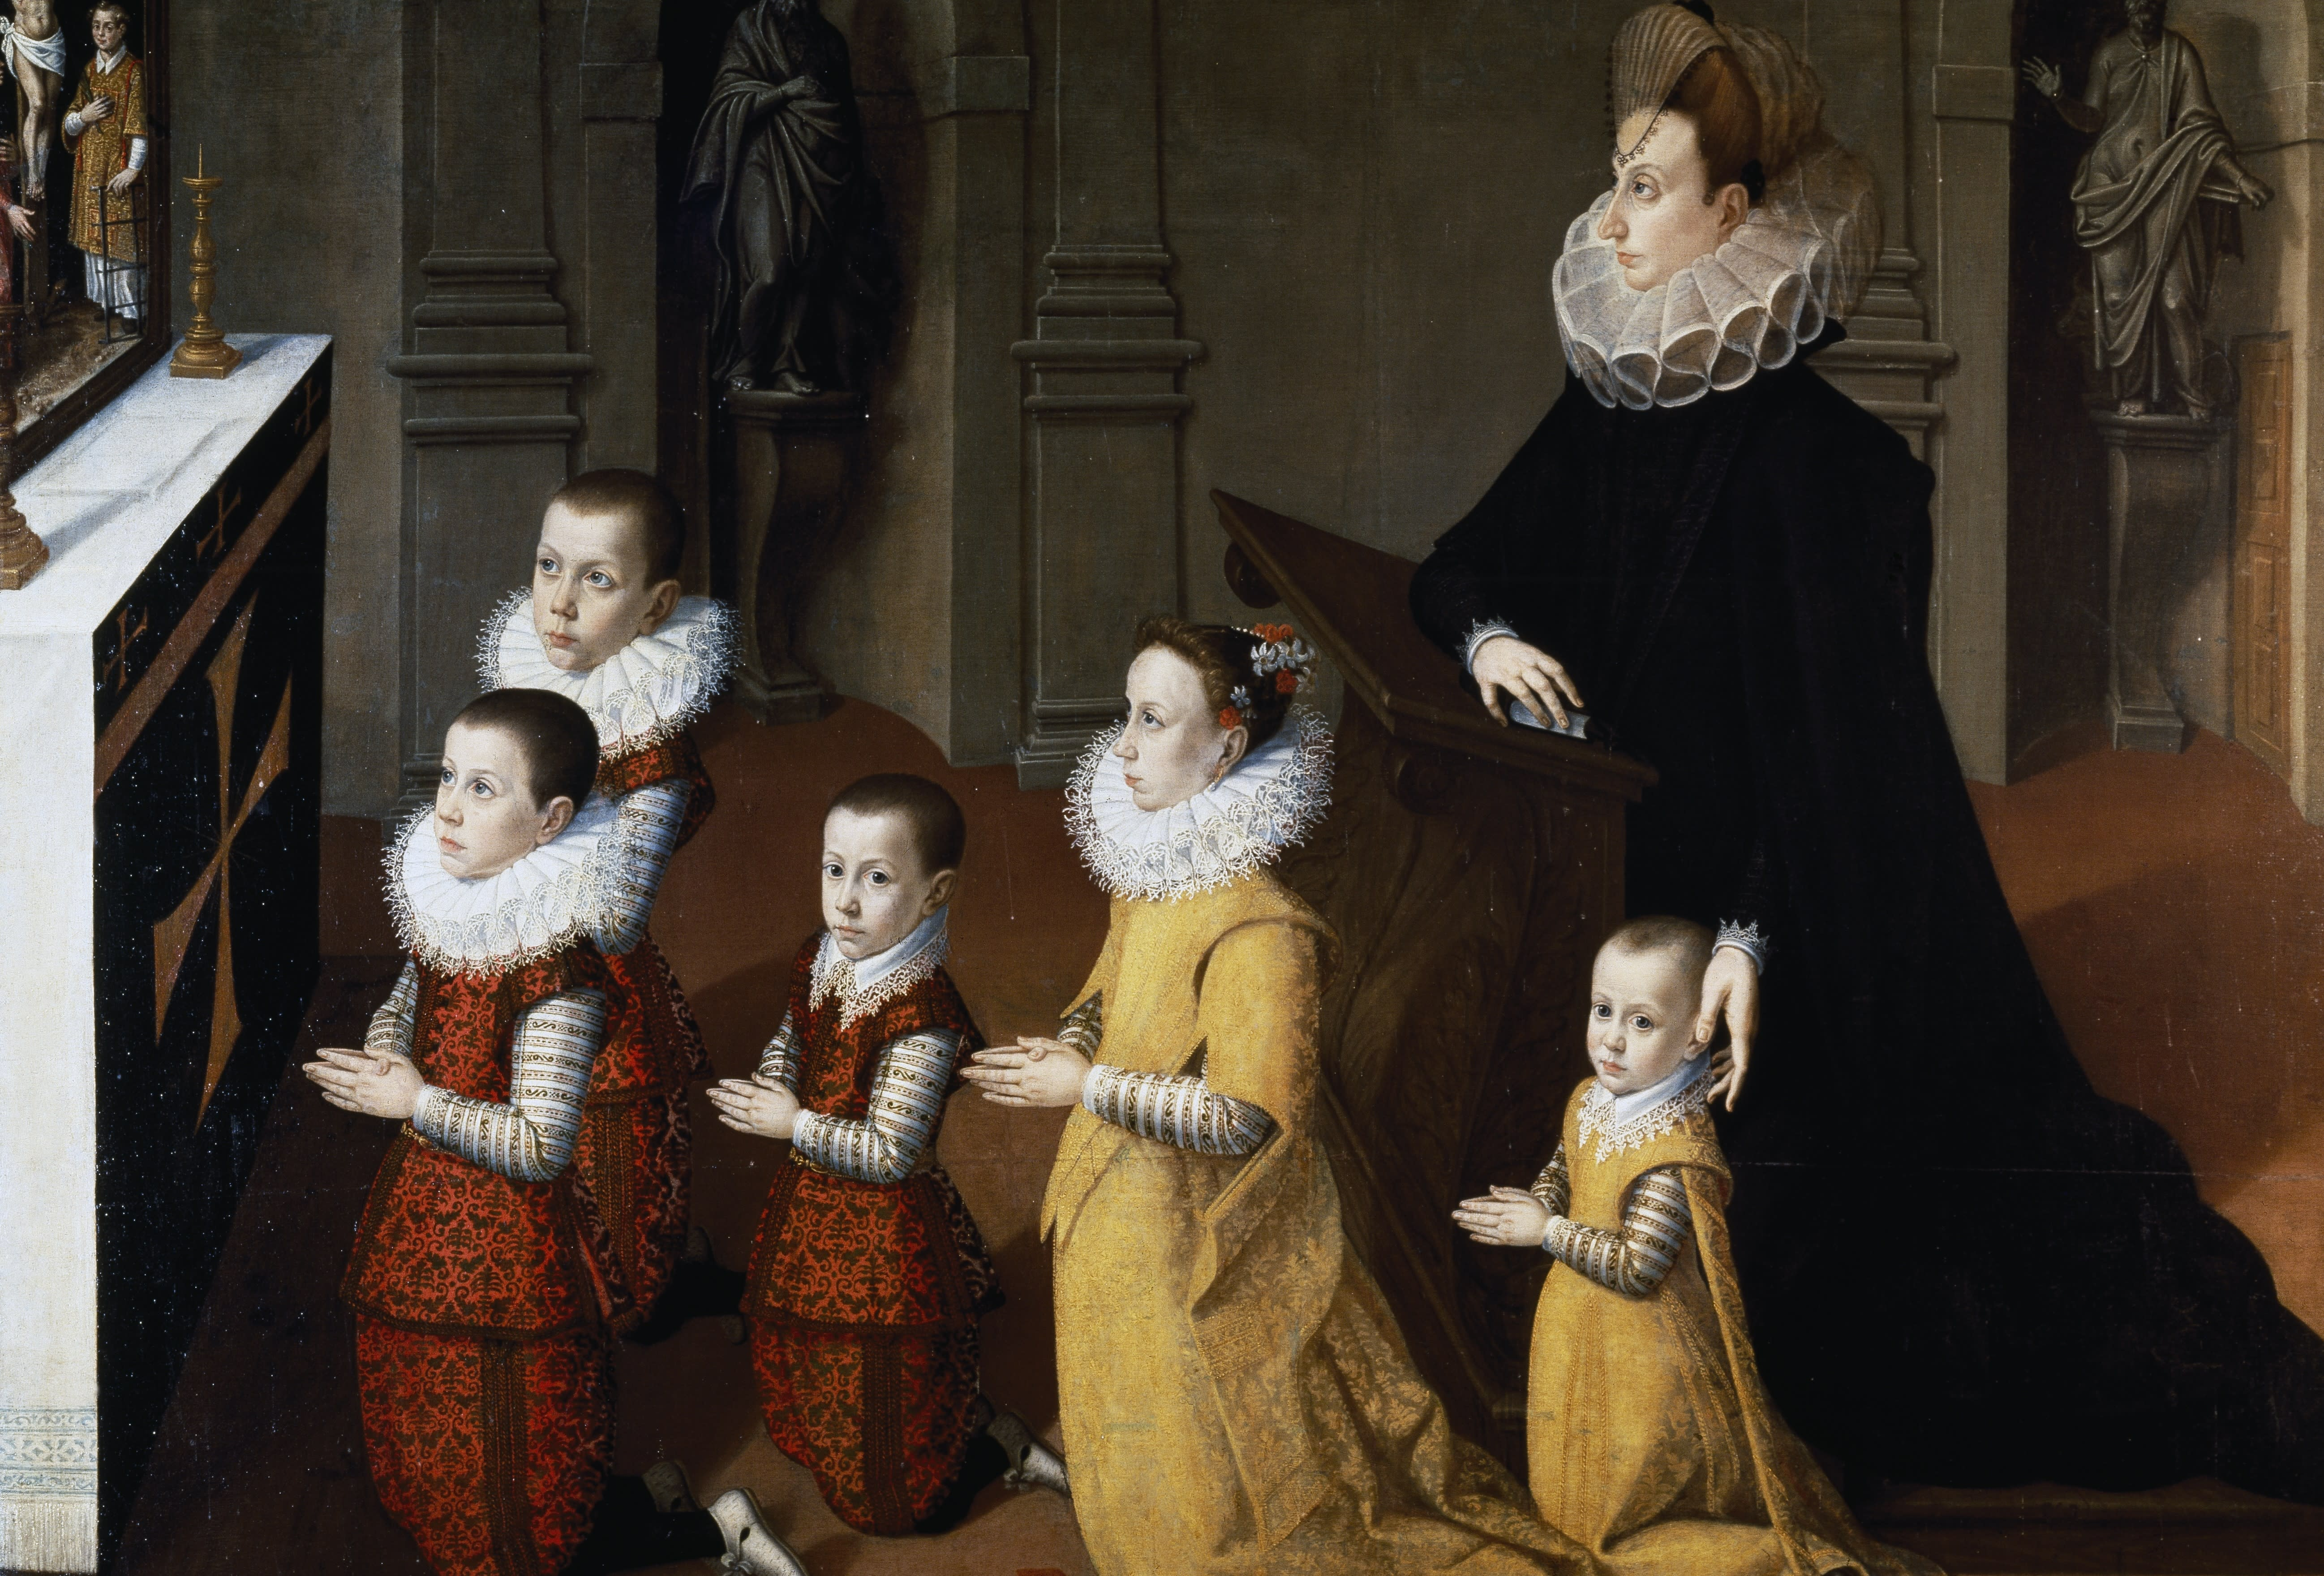 Portrait of Chiara Albini Petrozzani with their children in prayer. Painting attributed to Pietro Facchetti (1535 or 1539-1619).